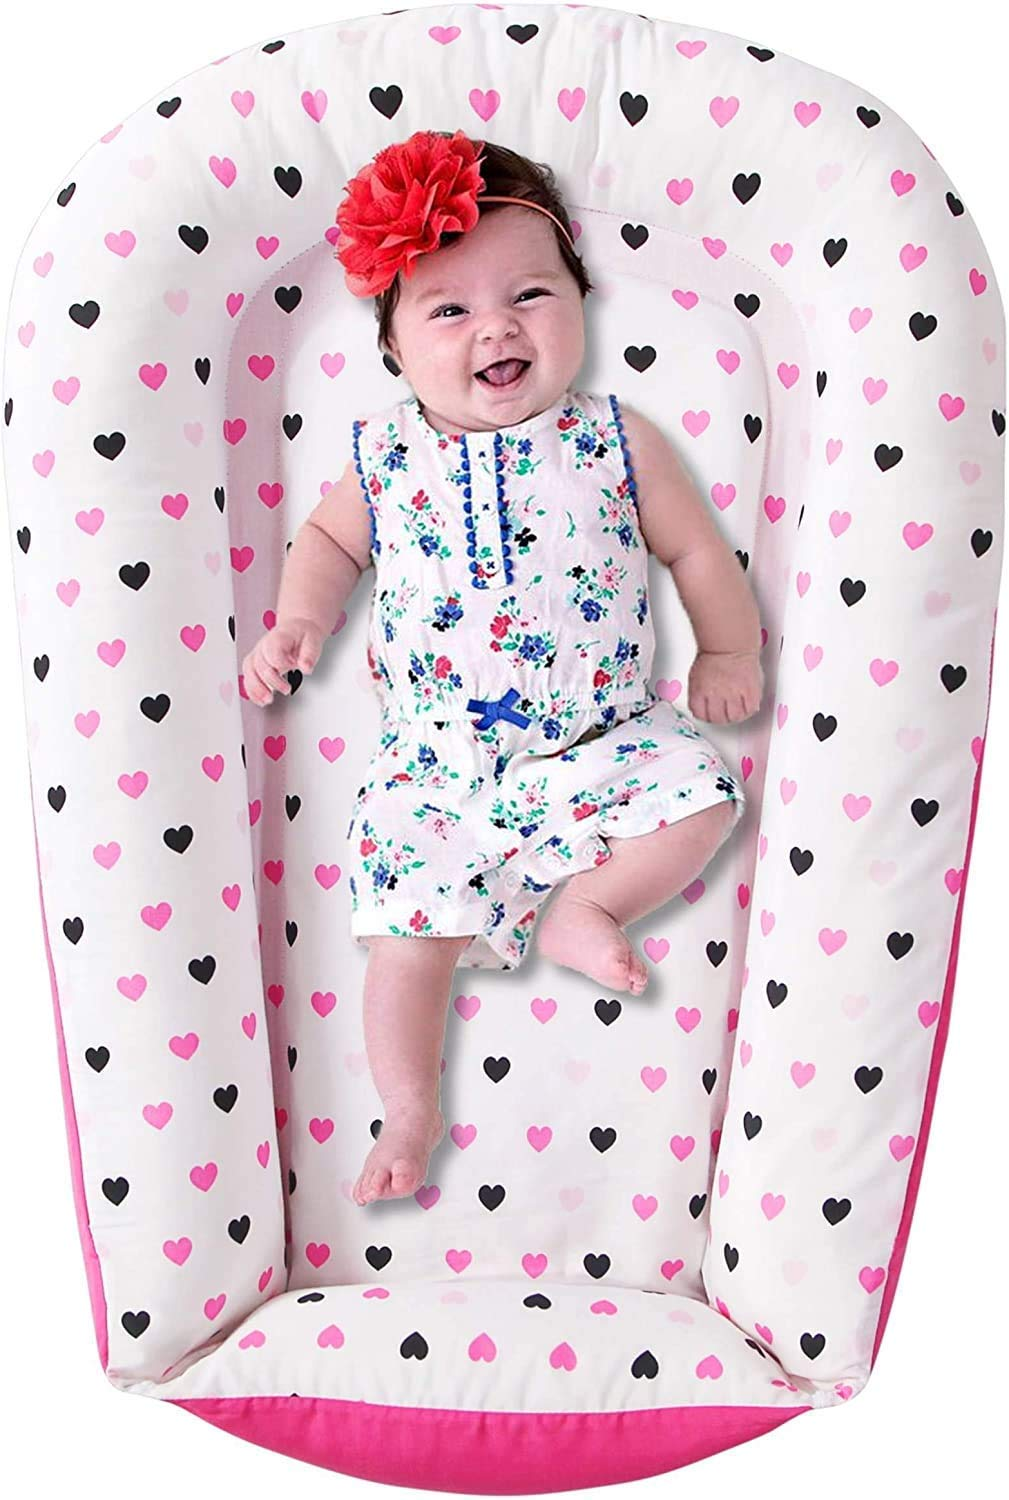 Little Grape Land Baby Nest Baby Lounger - Soft Newborn Lounger Made of Durable Cotton Fabric - Portable for Travelling, Pink Hearts